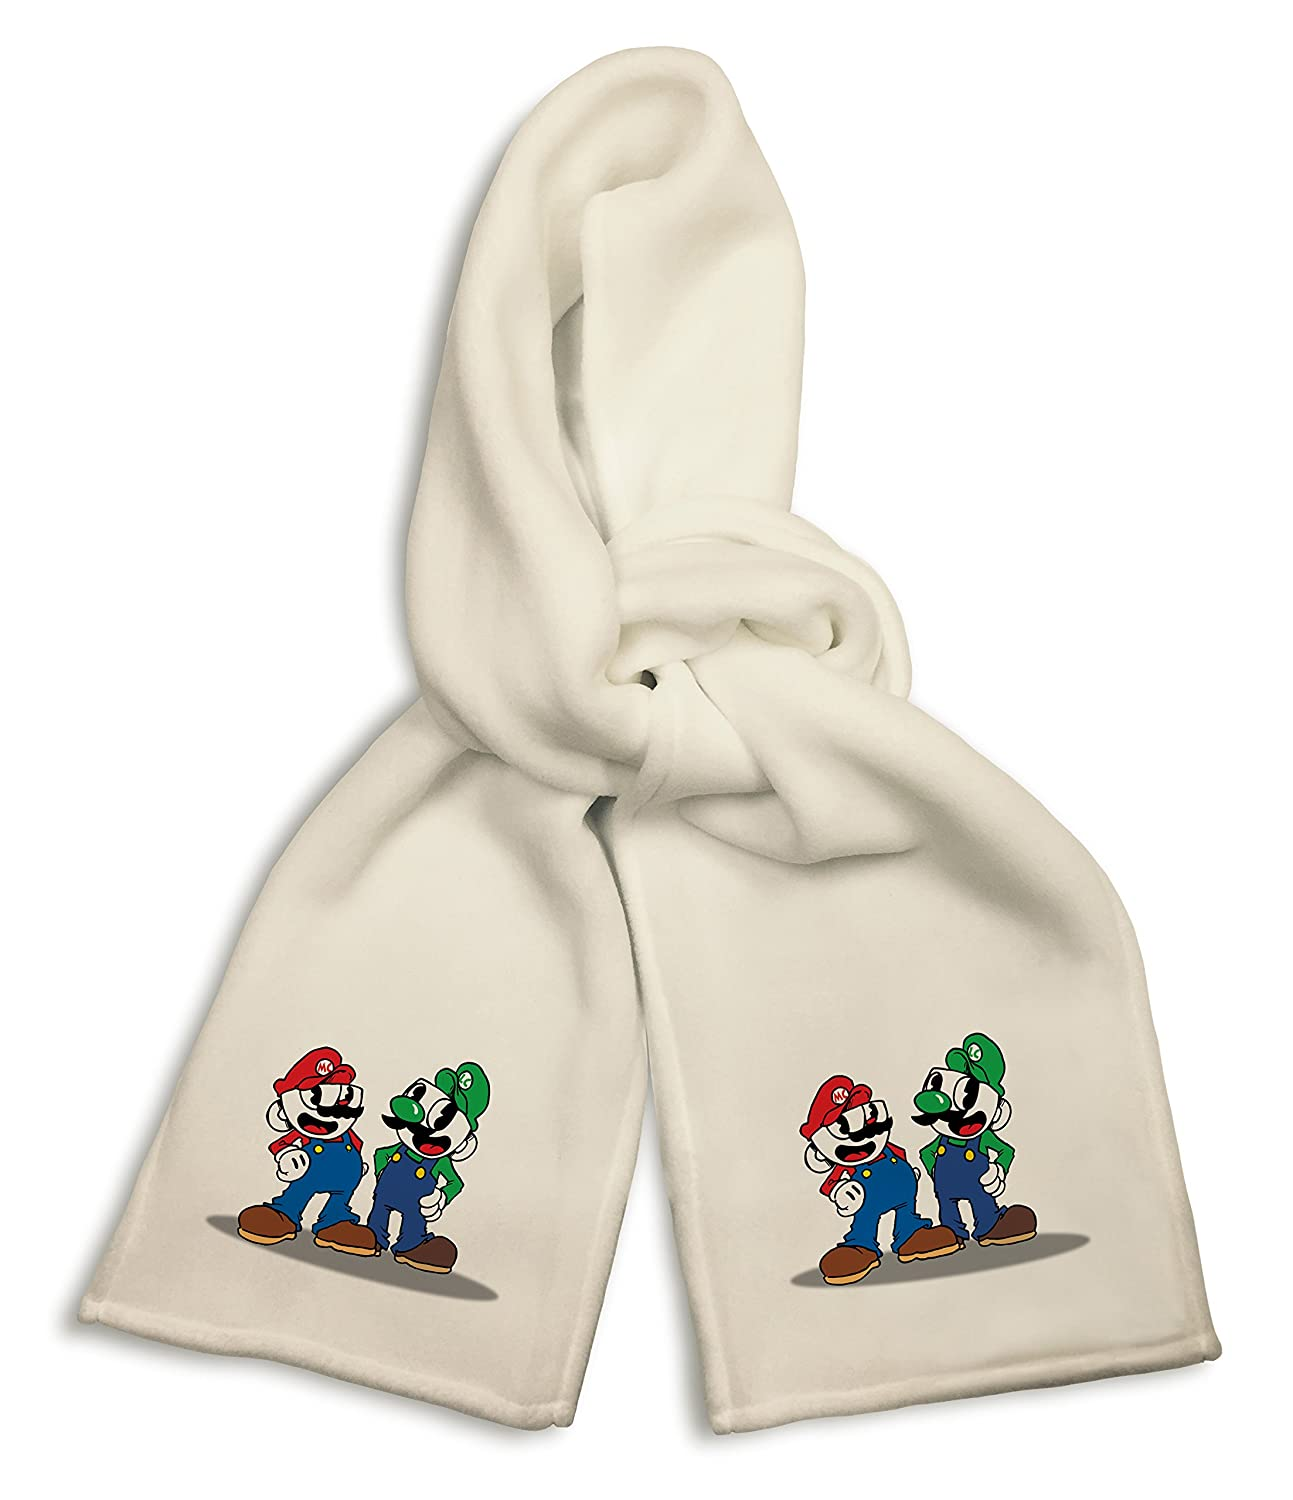 White Winter Scarf Mug Brothers Red and Green Overalls Funny Parody